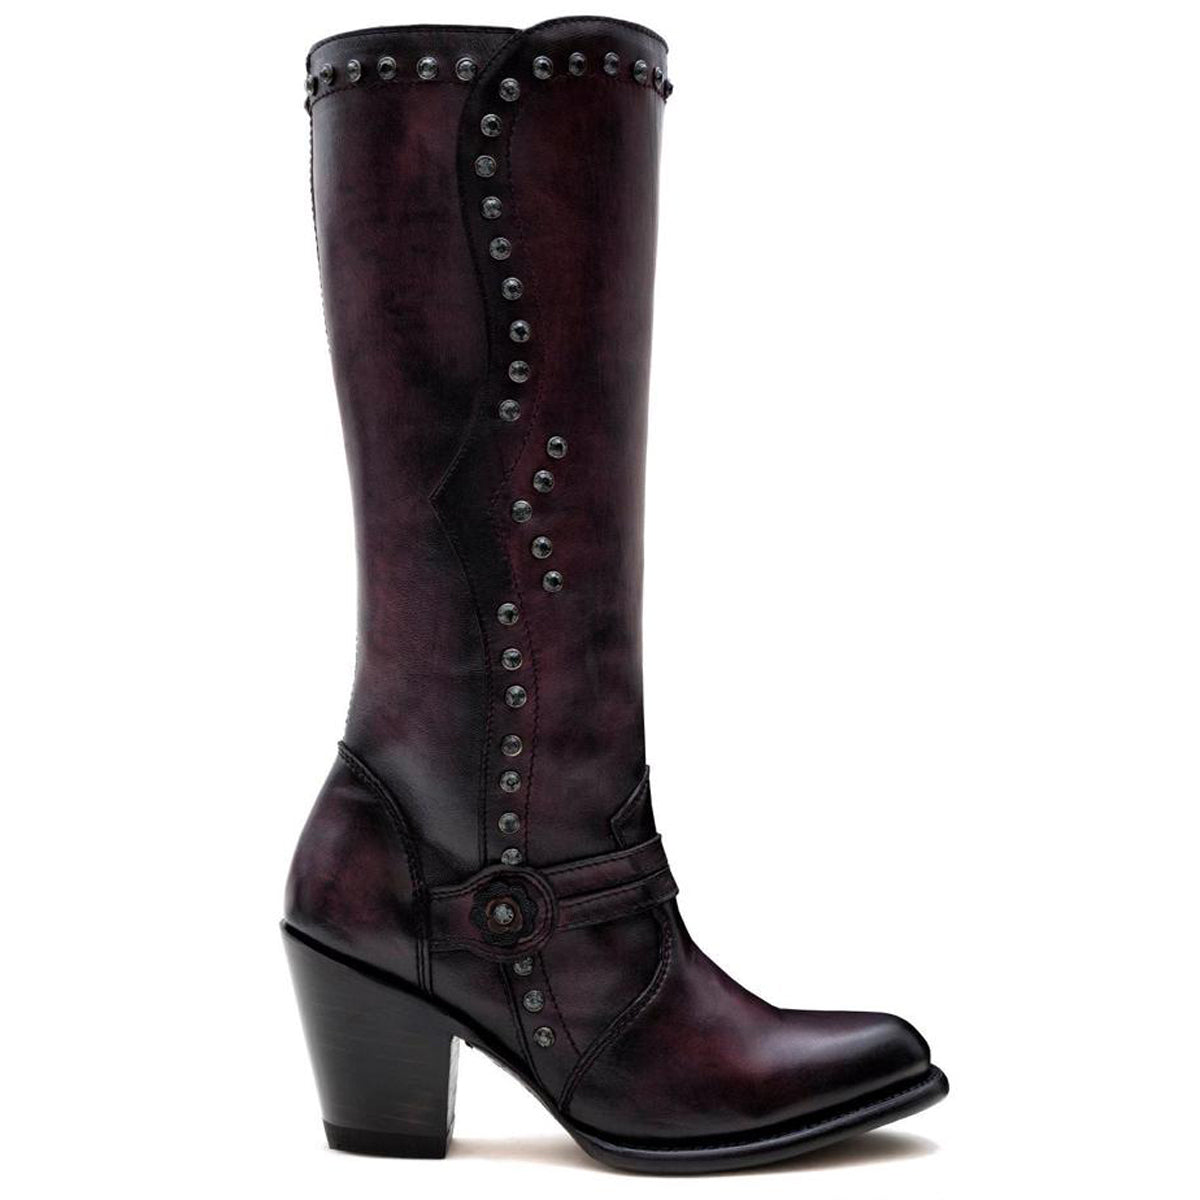 Denali Burgundy - High Boot